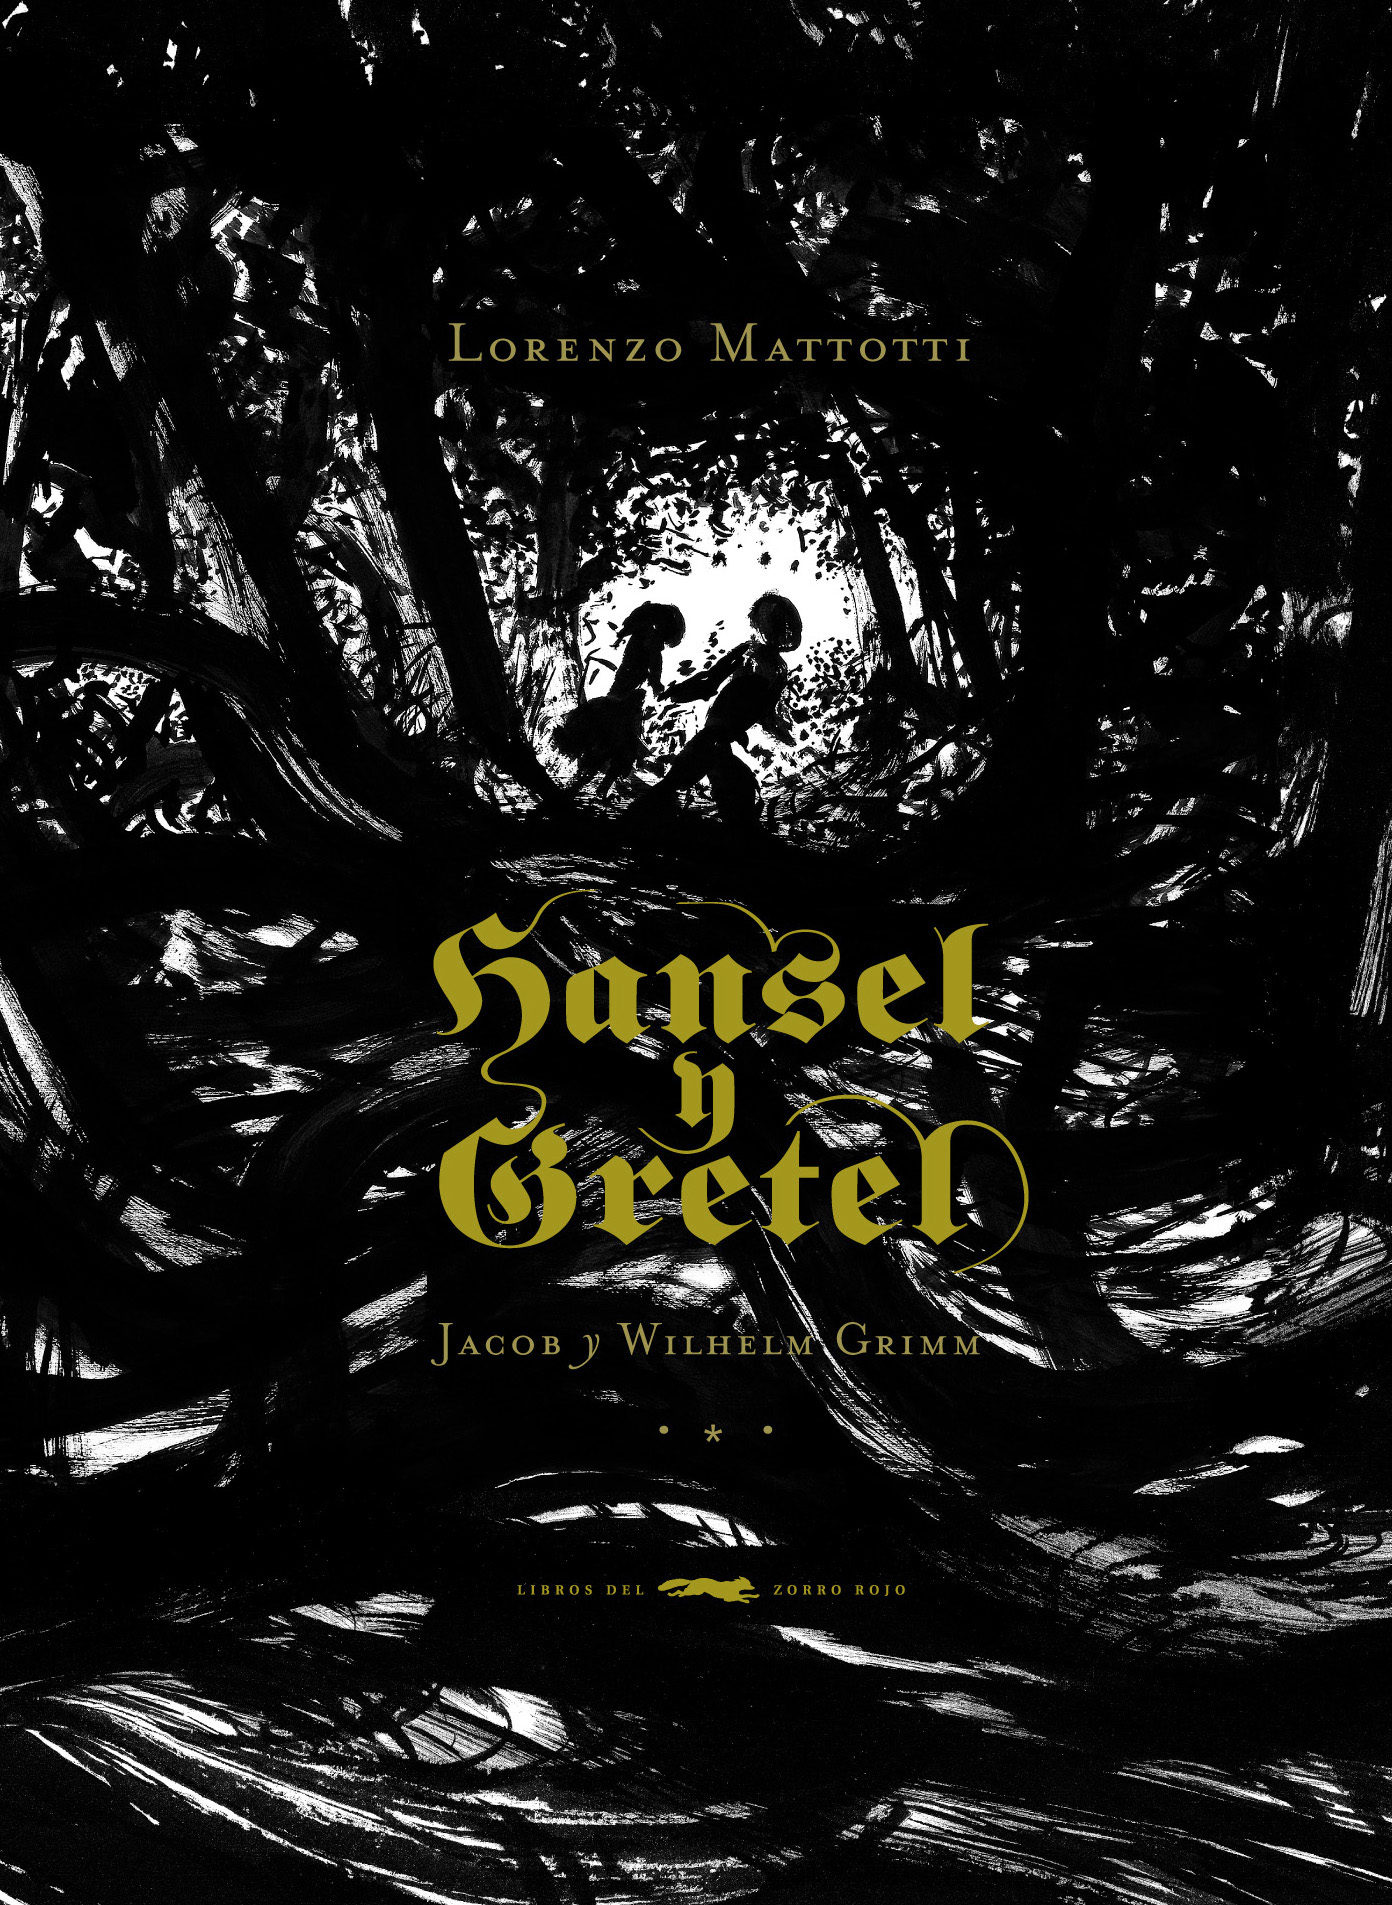 Como Descargar Libros En Kindle Hansel Y Gretel Kindleton Descarga Libros Gratis Para